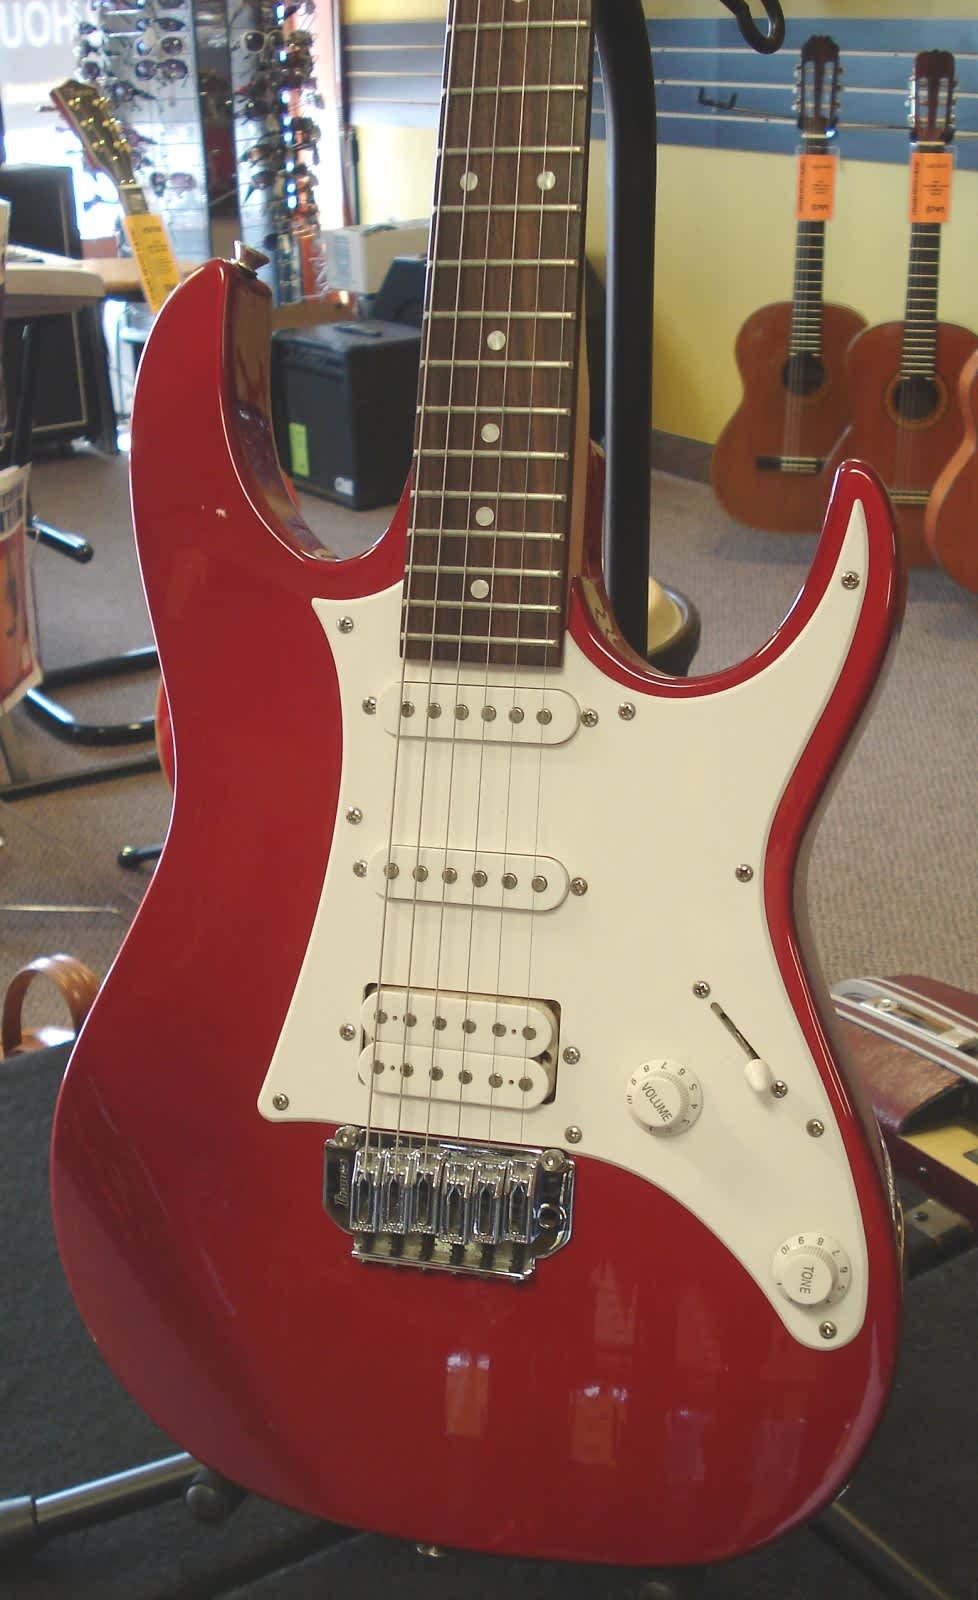 Generous Pit Bike Wiring Huge 2 Humbuckers In Series Clean One Humbucker One Volume Wiring Remote Start Alarm Installation Youthful 3 Pickup Guitar DarkWiring 1 2 3 Ibanez Gio HSS Candy Apple Red Electric Guitar | Reverb